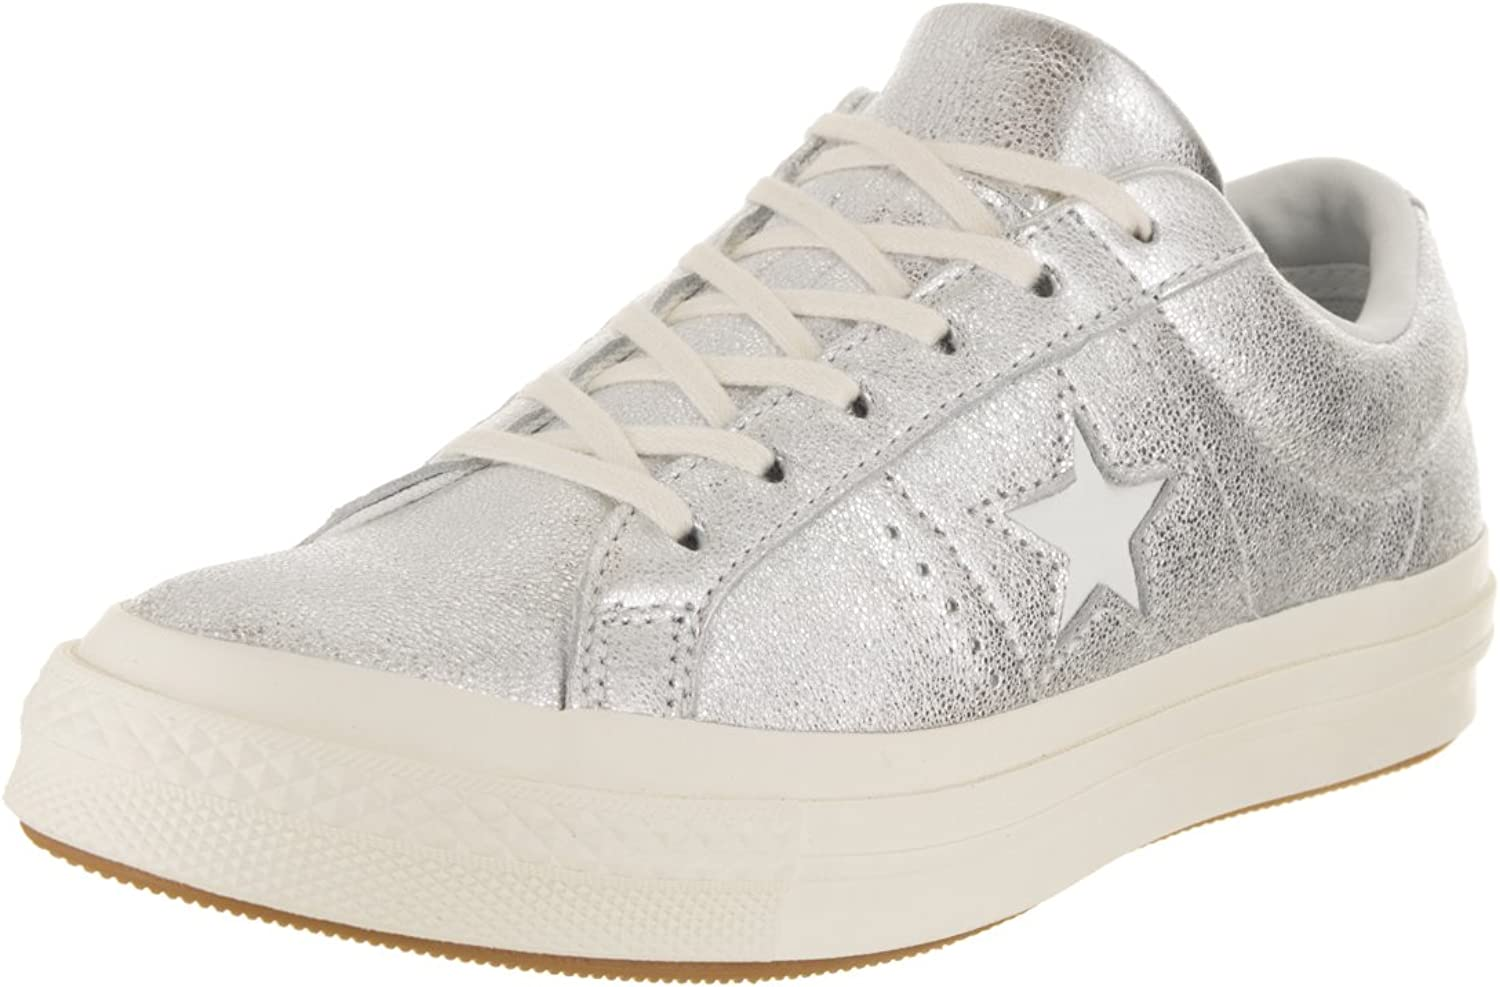 Converse Unisex Adults' Cons One Star Metallic Leather Ox Low-Top Sneakers